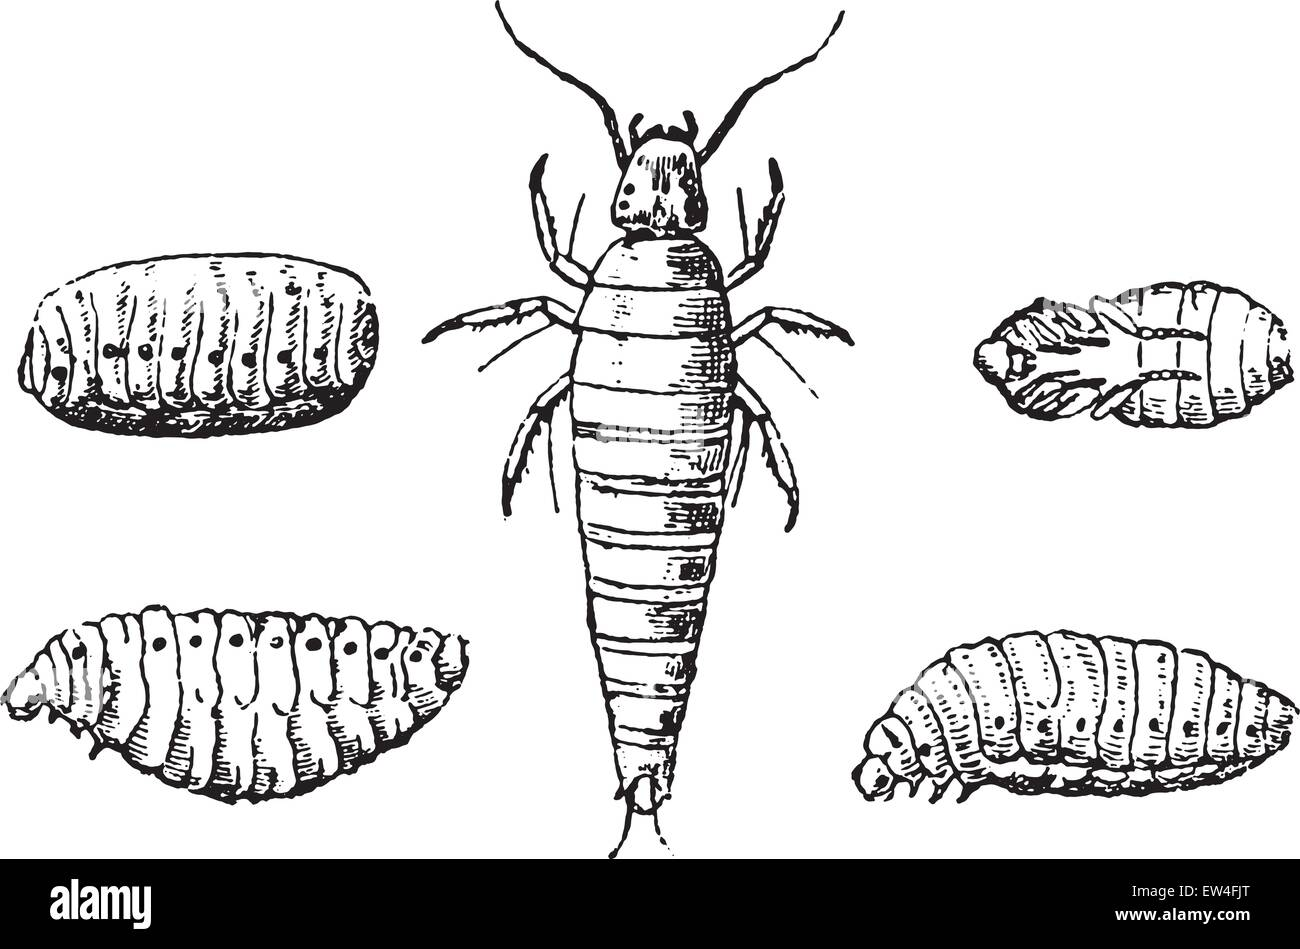 Insect larvae and nymphs vesicant, vintage engraved illustration. Natural History of Animals, 1880. - Stock Image